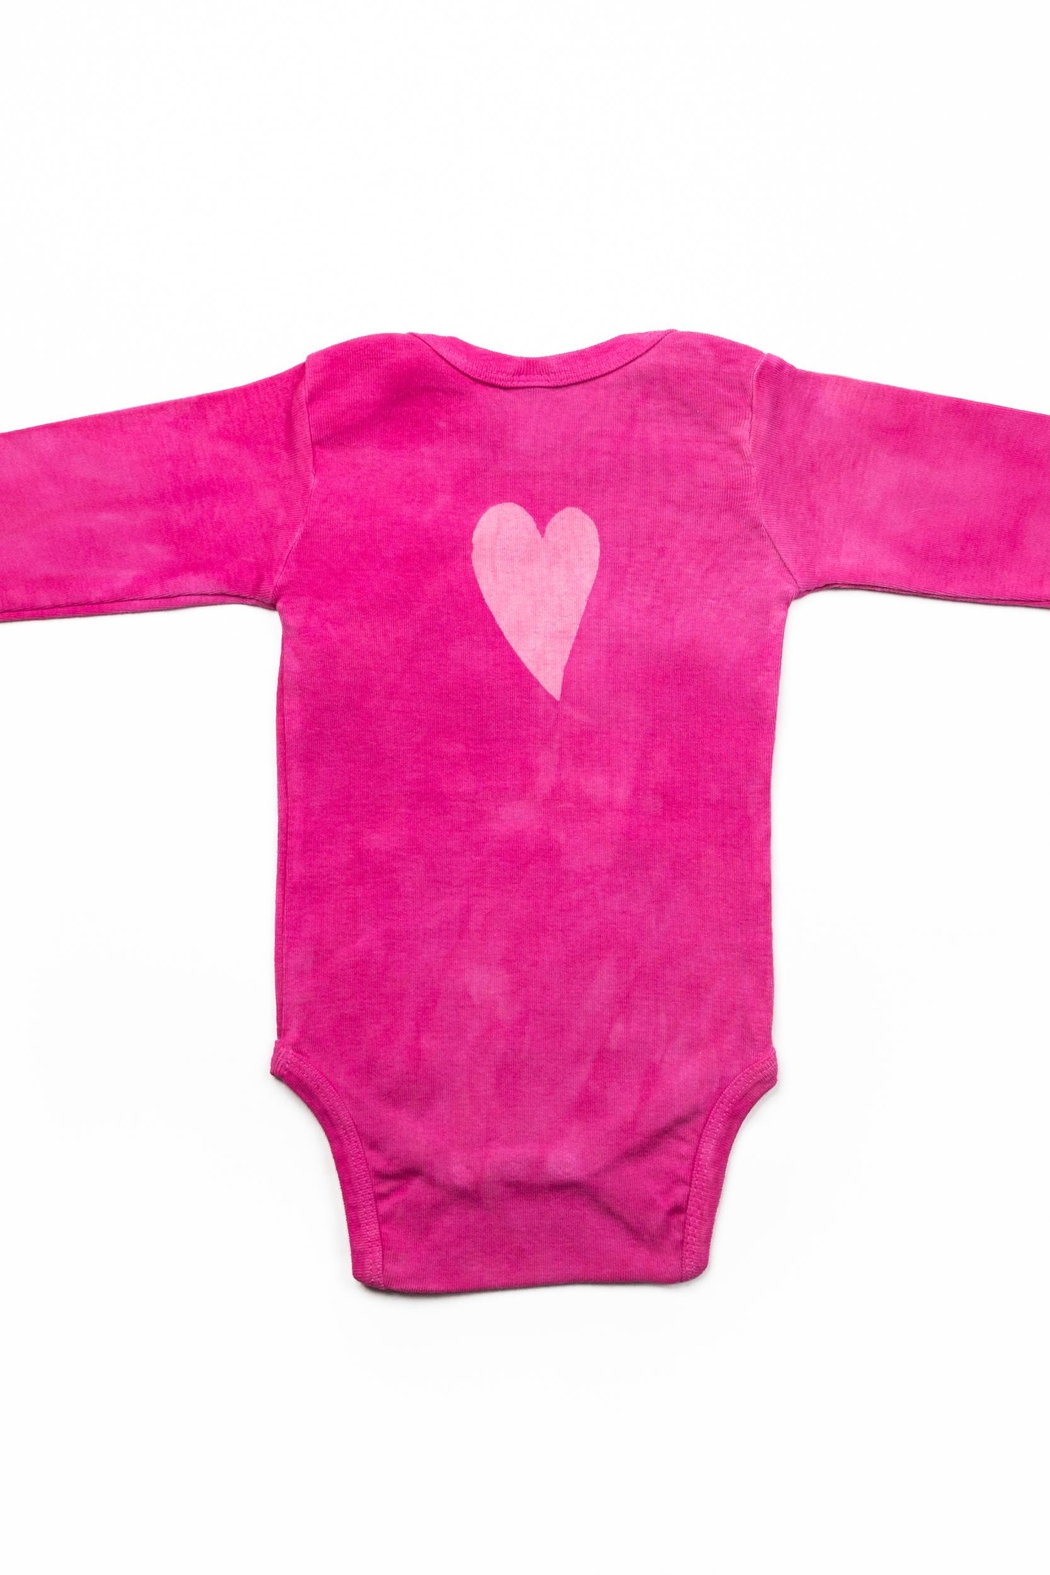 LizzyLoo Designs Tiny Hearts Onesie - Front Full Image